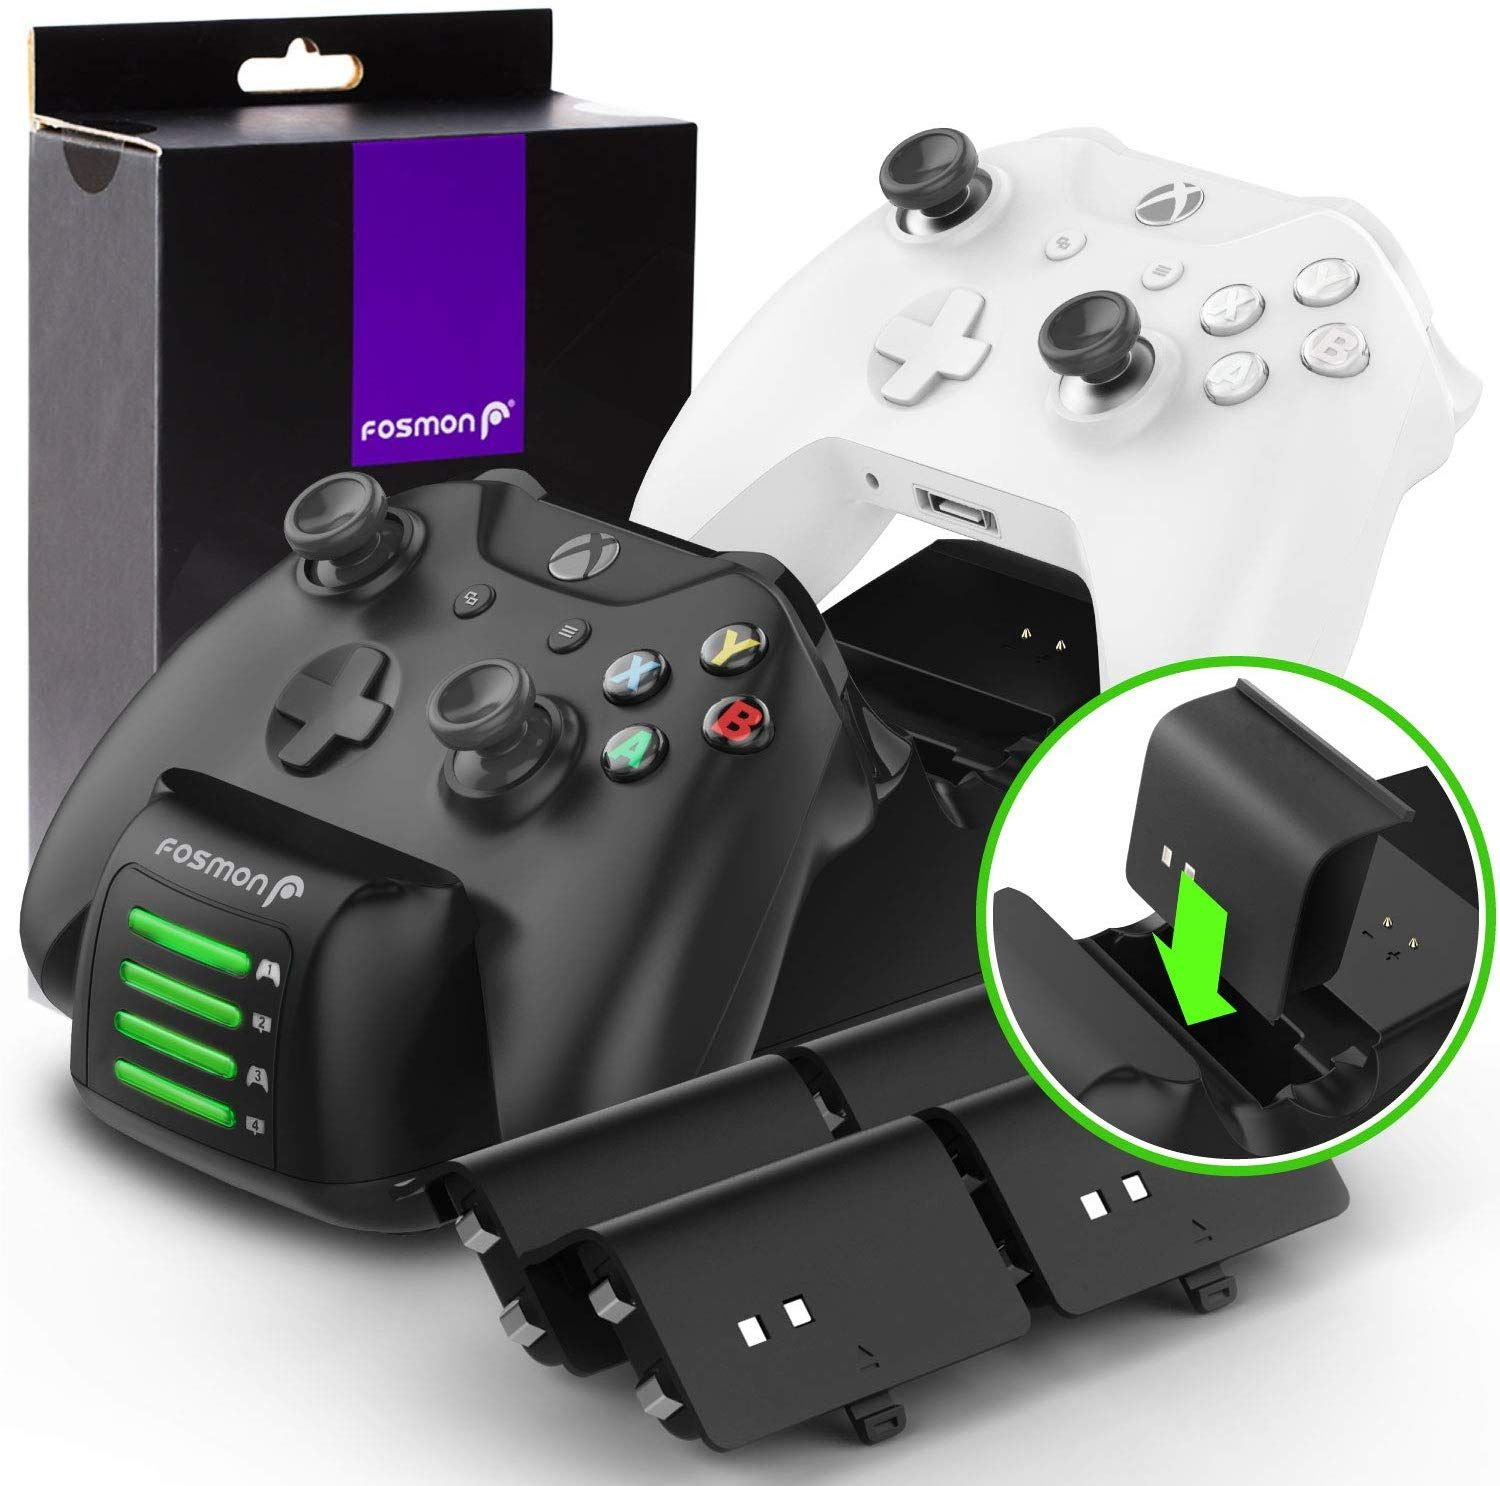 Fosmon Xbox One Quad Pro Controller Charger With 4 Rechargeable Battery Packs Upgraded Dual Dock In 2020 Xbox One Xbox One Elite Controller Xbox One Controller